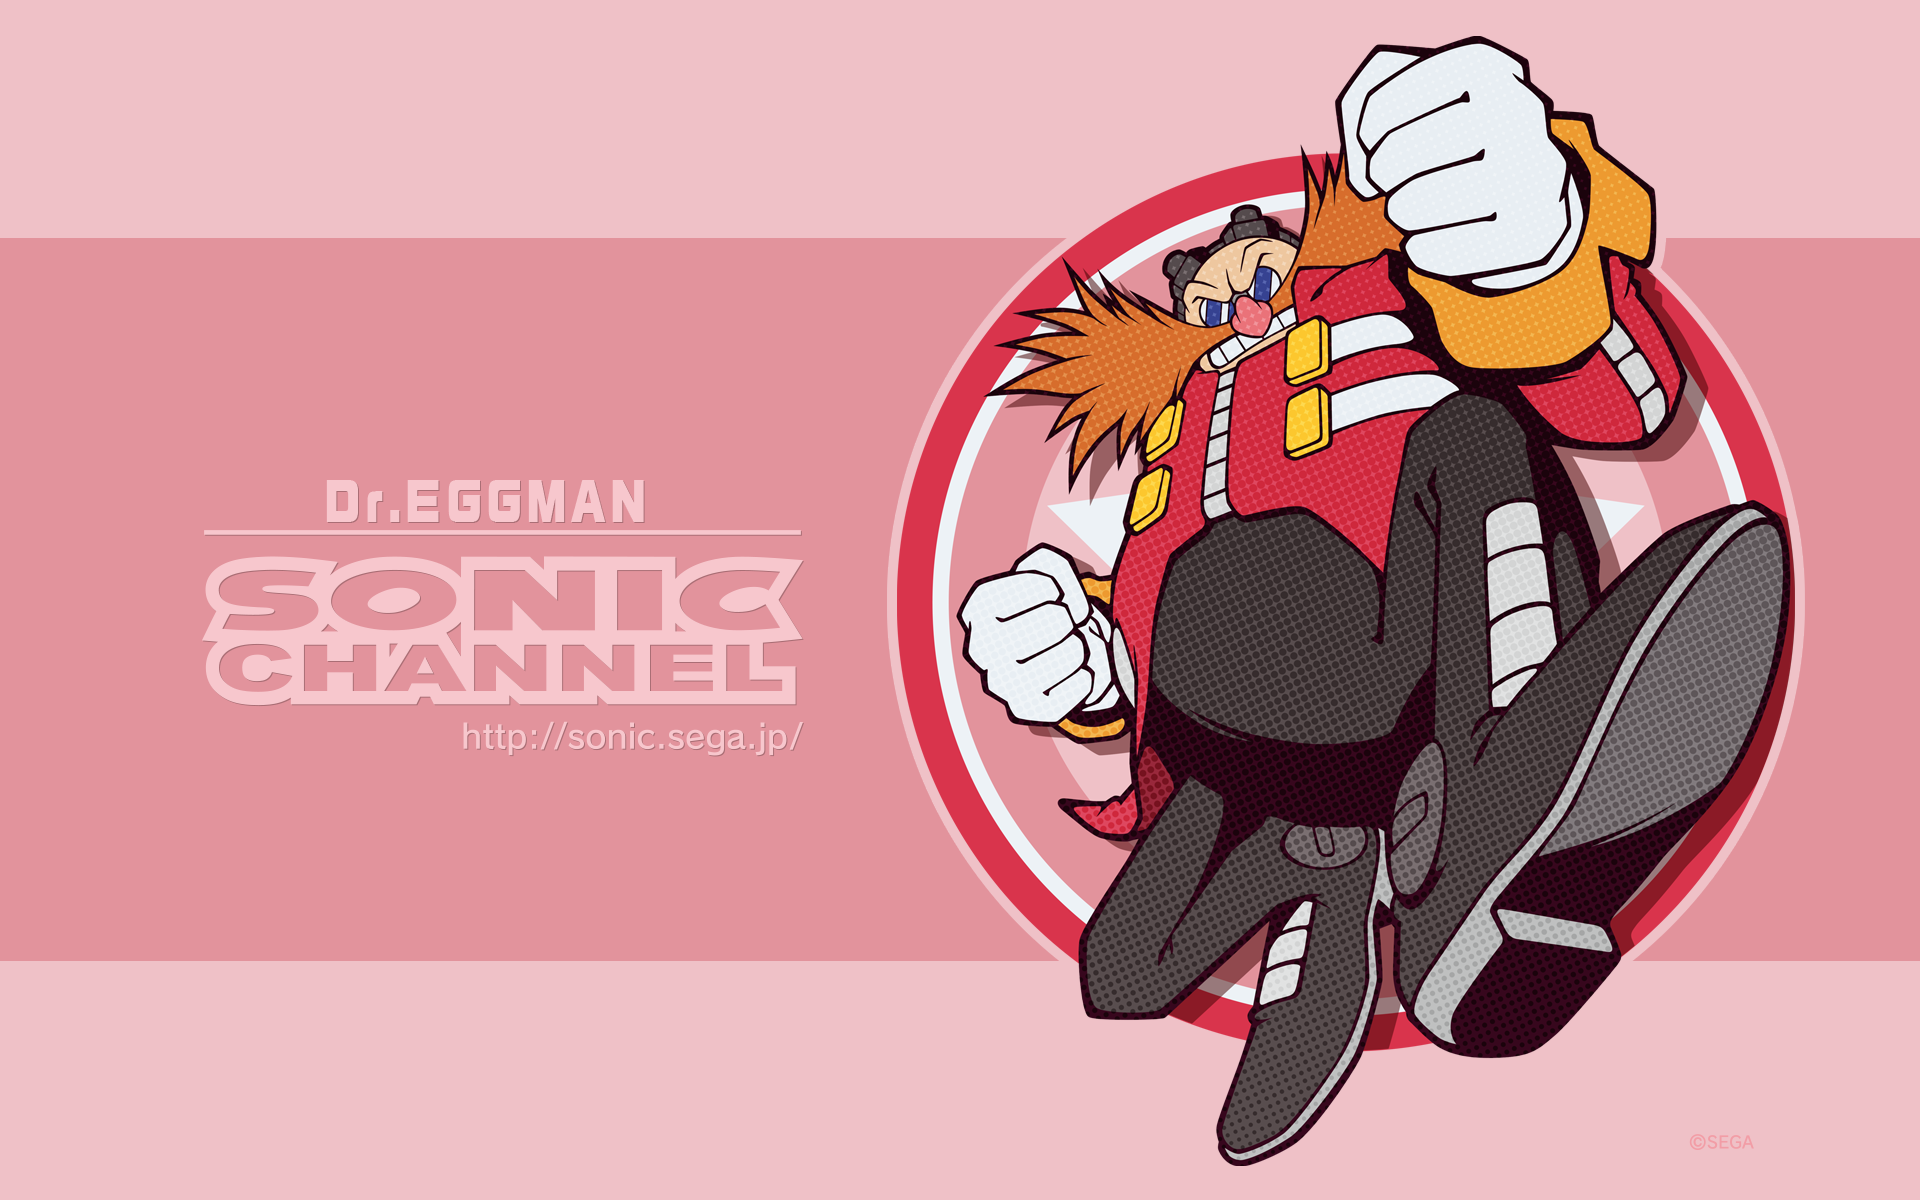 http://sonic.sega.jp/SonicChannel/enjoy/image/wallpaper_168_eggman_07_pc.png